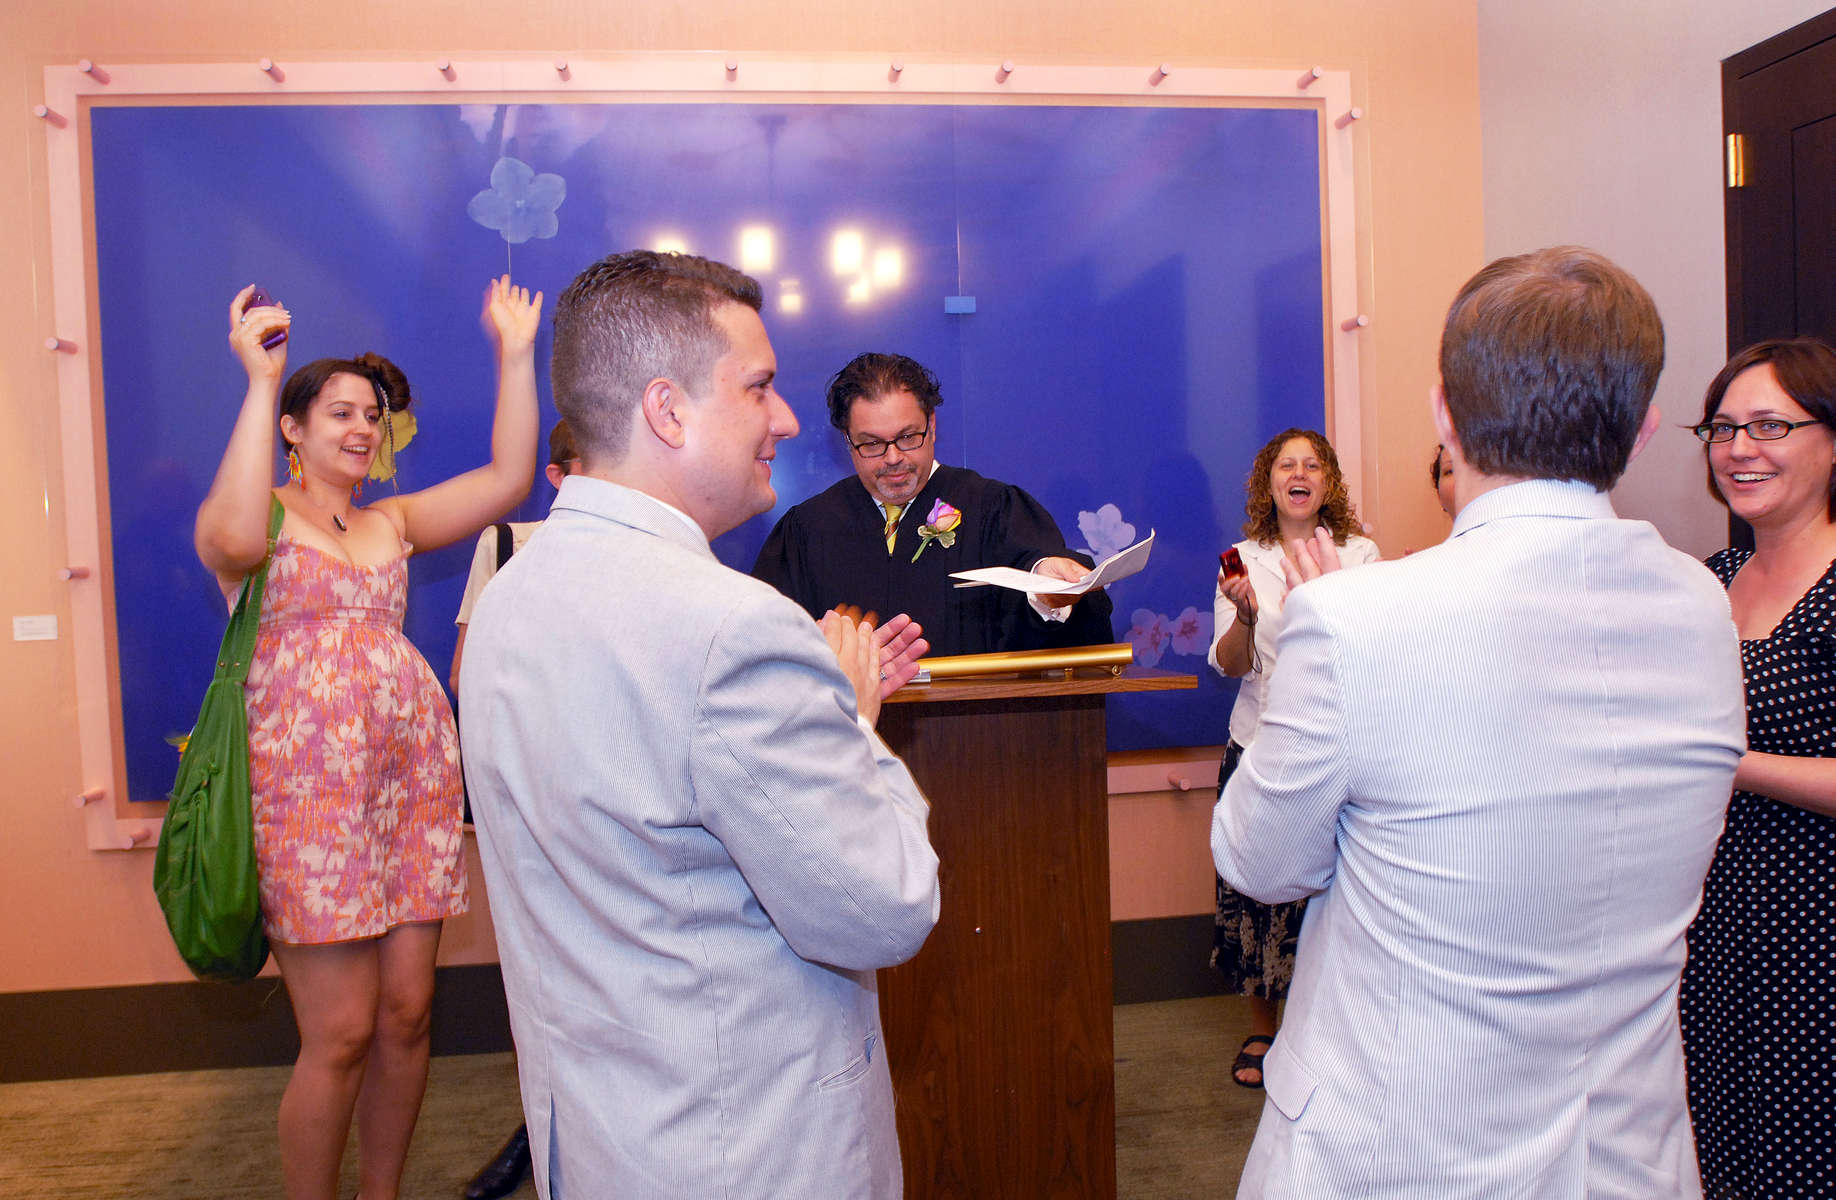 A gay couple was married at the NYC Marriage Bureau after same-sex marriage was legally recognized in New York State - July, 2011